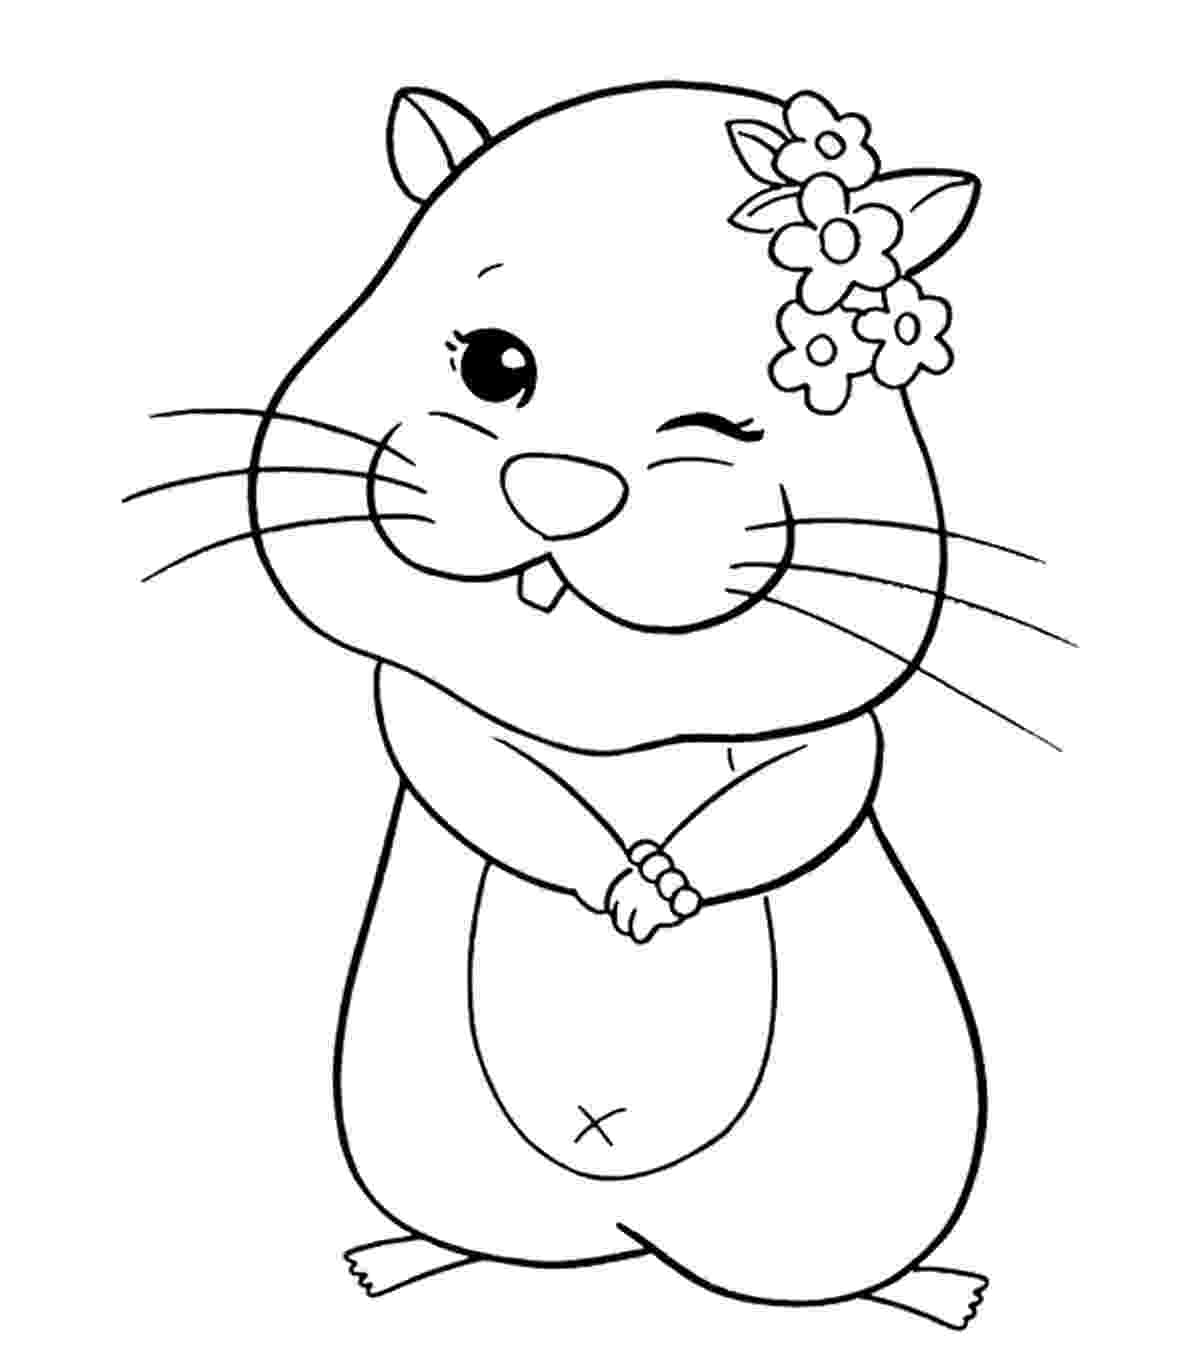 hamster coloring pages to print hamster coloring pages getcoloringpagescom print pages hamster to coloring